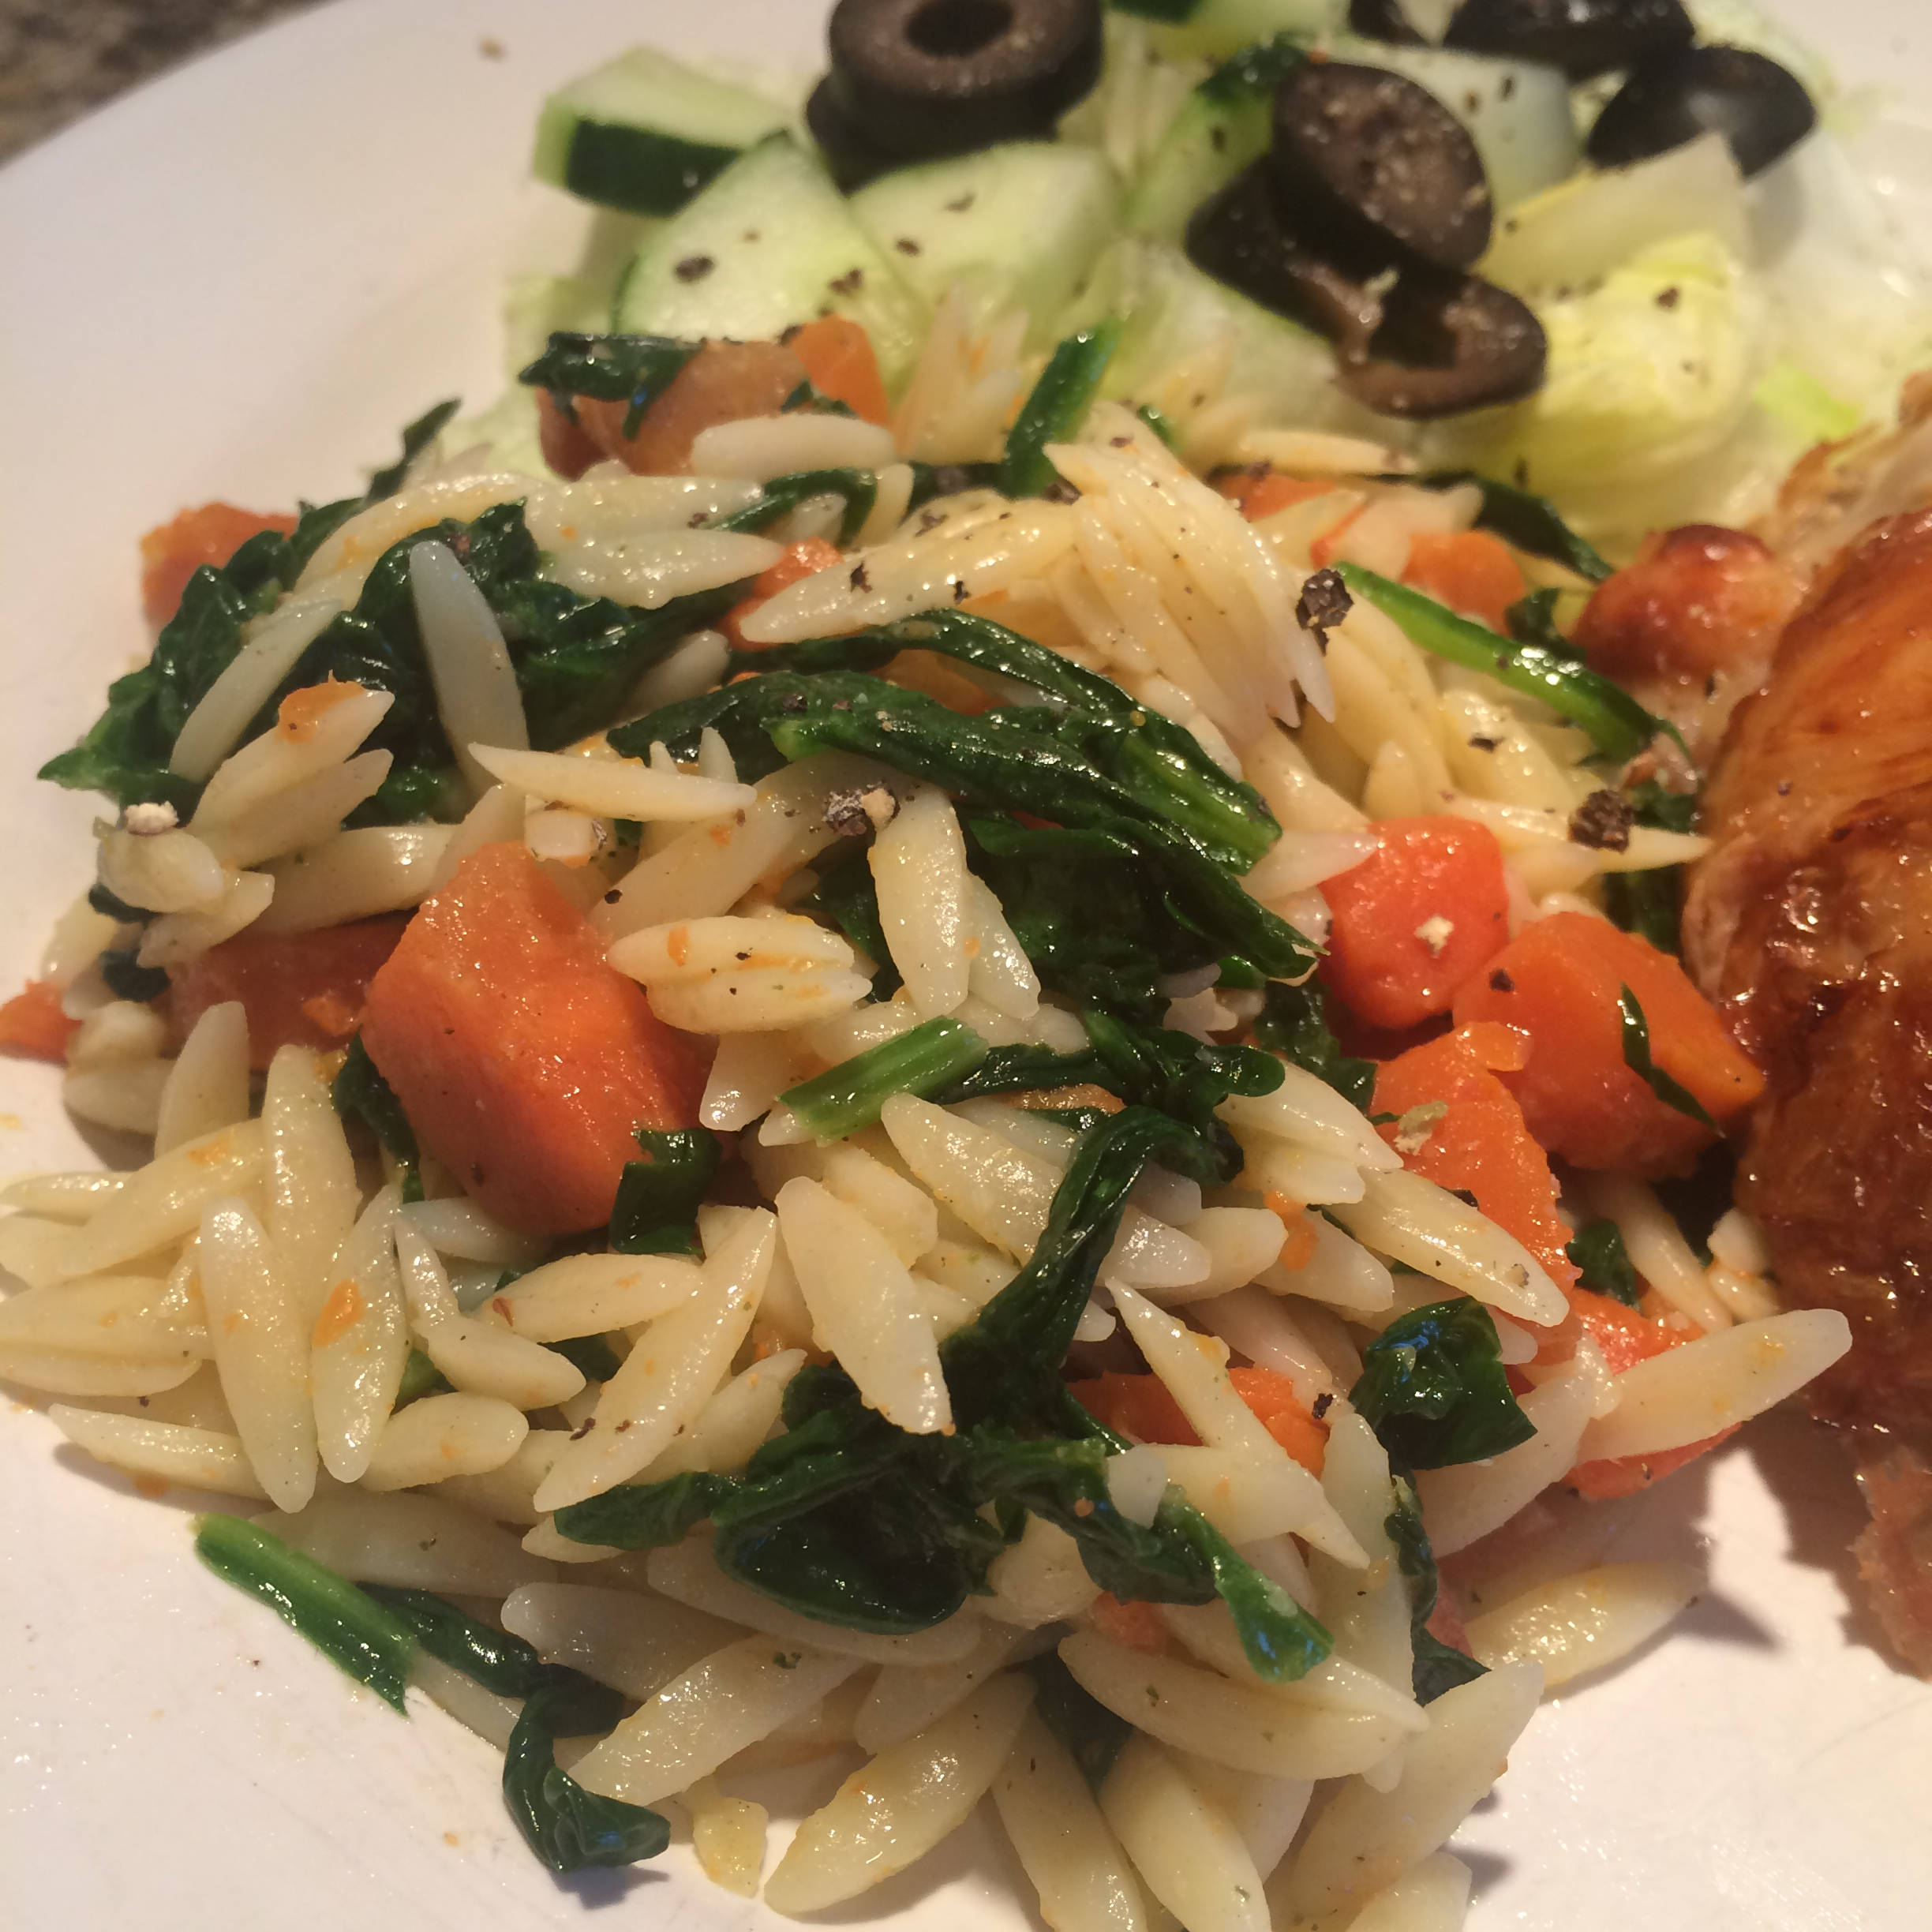 Orzo Pasta with Carrots and Spinach